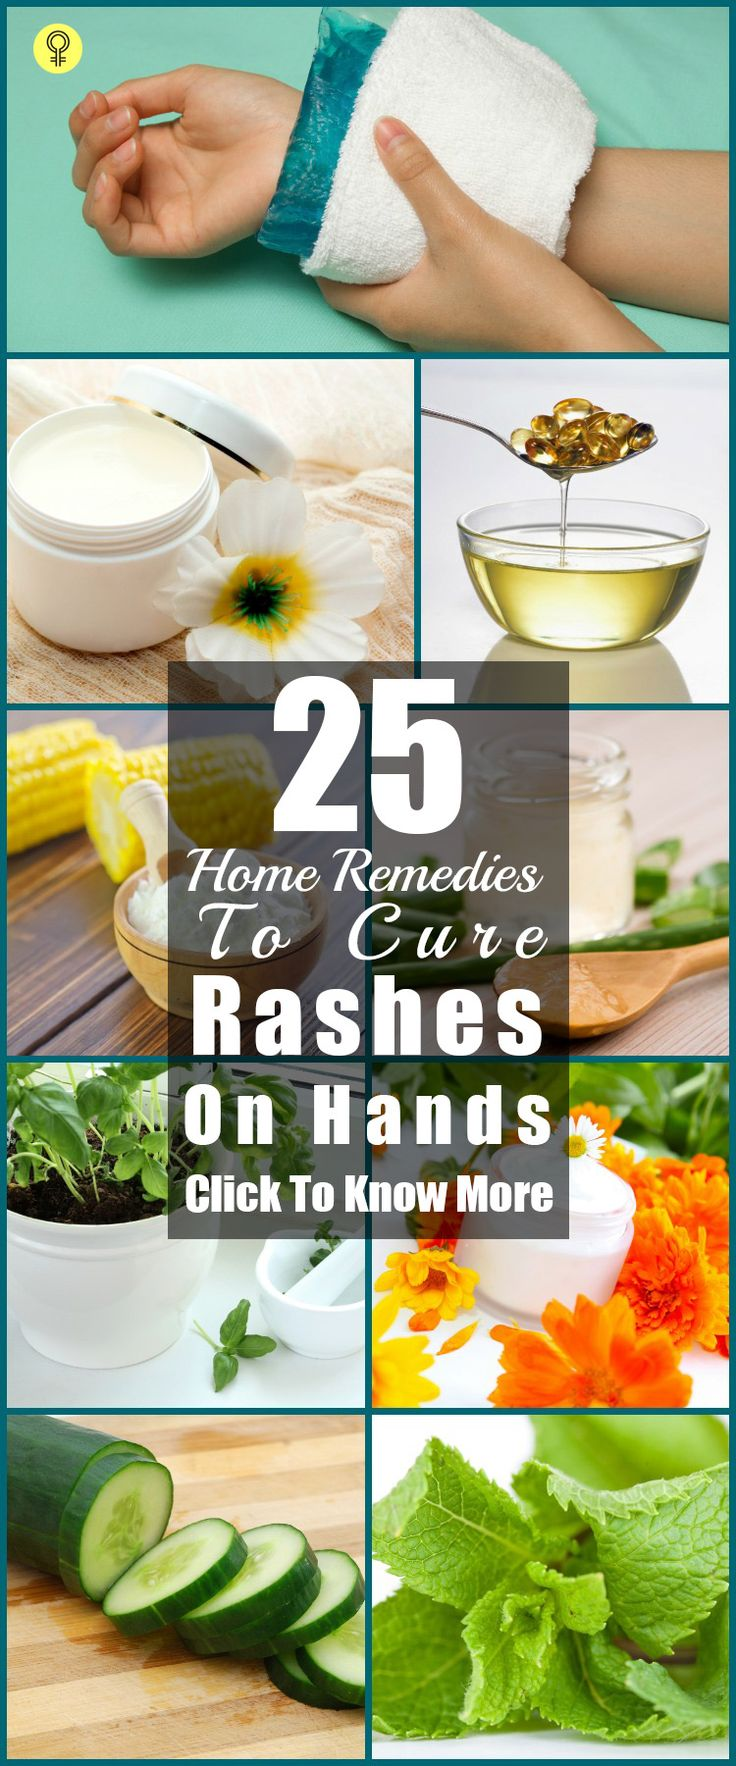 25 Effective Home Remedies To Cure Rashes On Hands